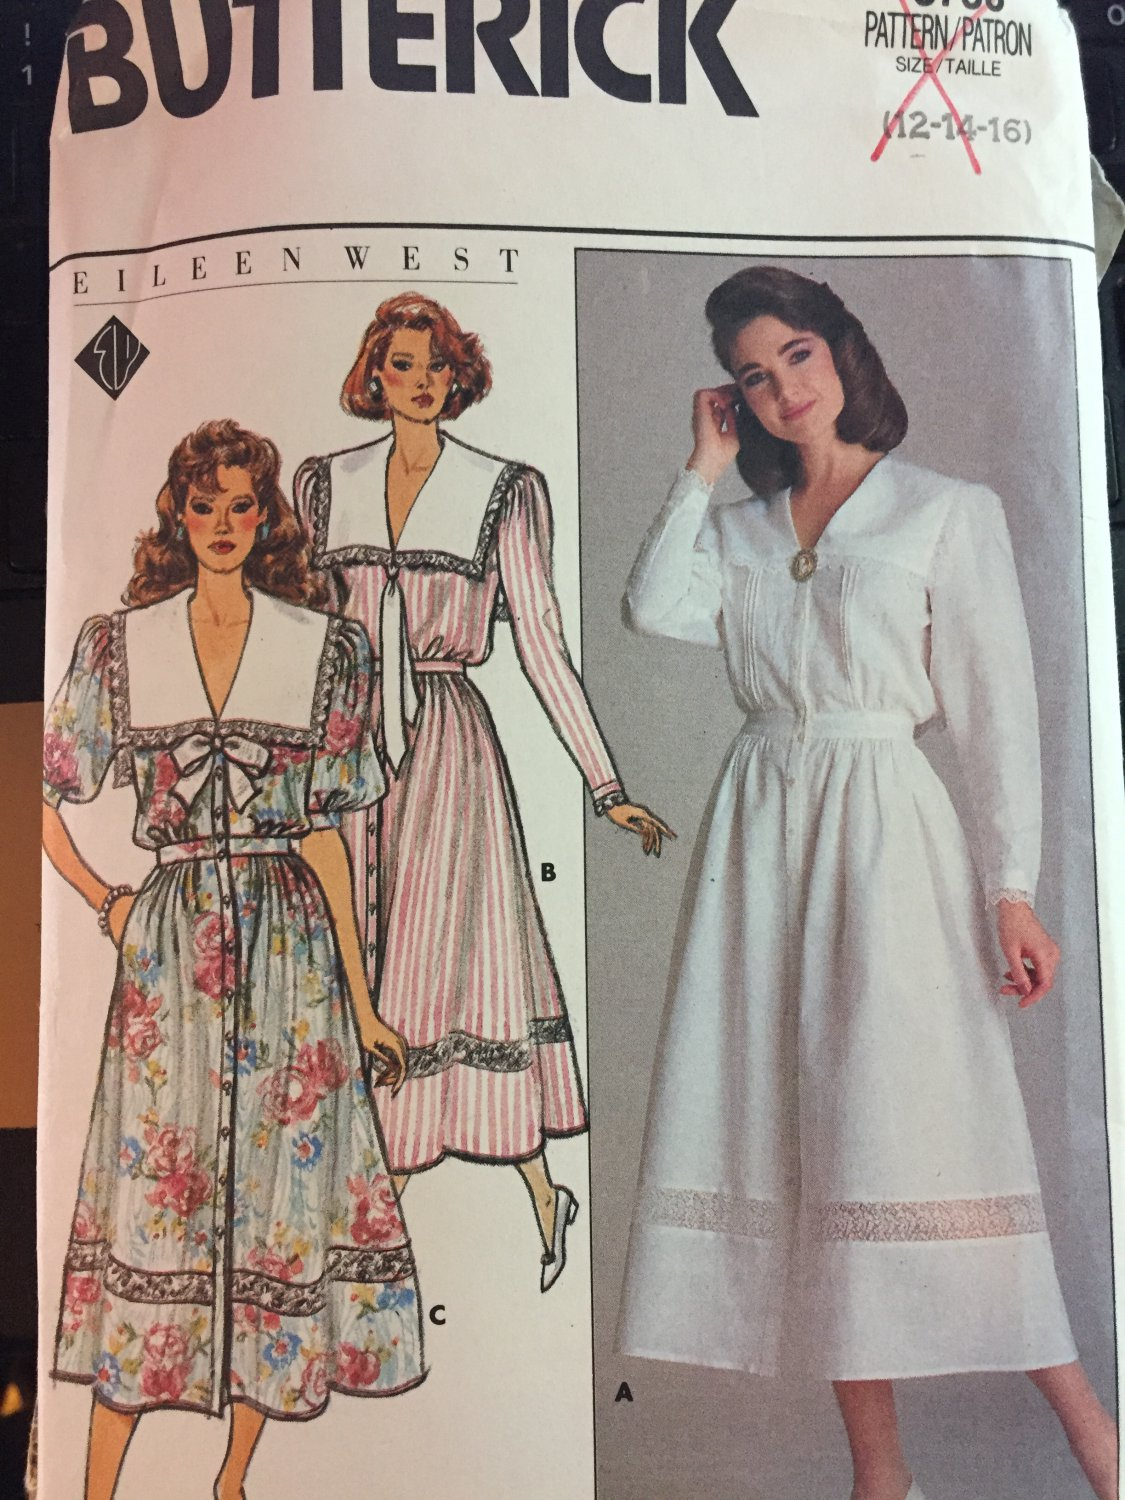 Butterick 3736 1980's Eileen West Blouson Dress Sewing Pattern Size 12-14-16